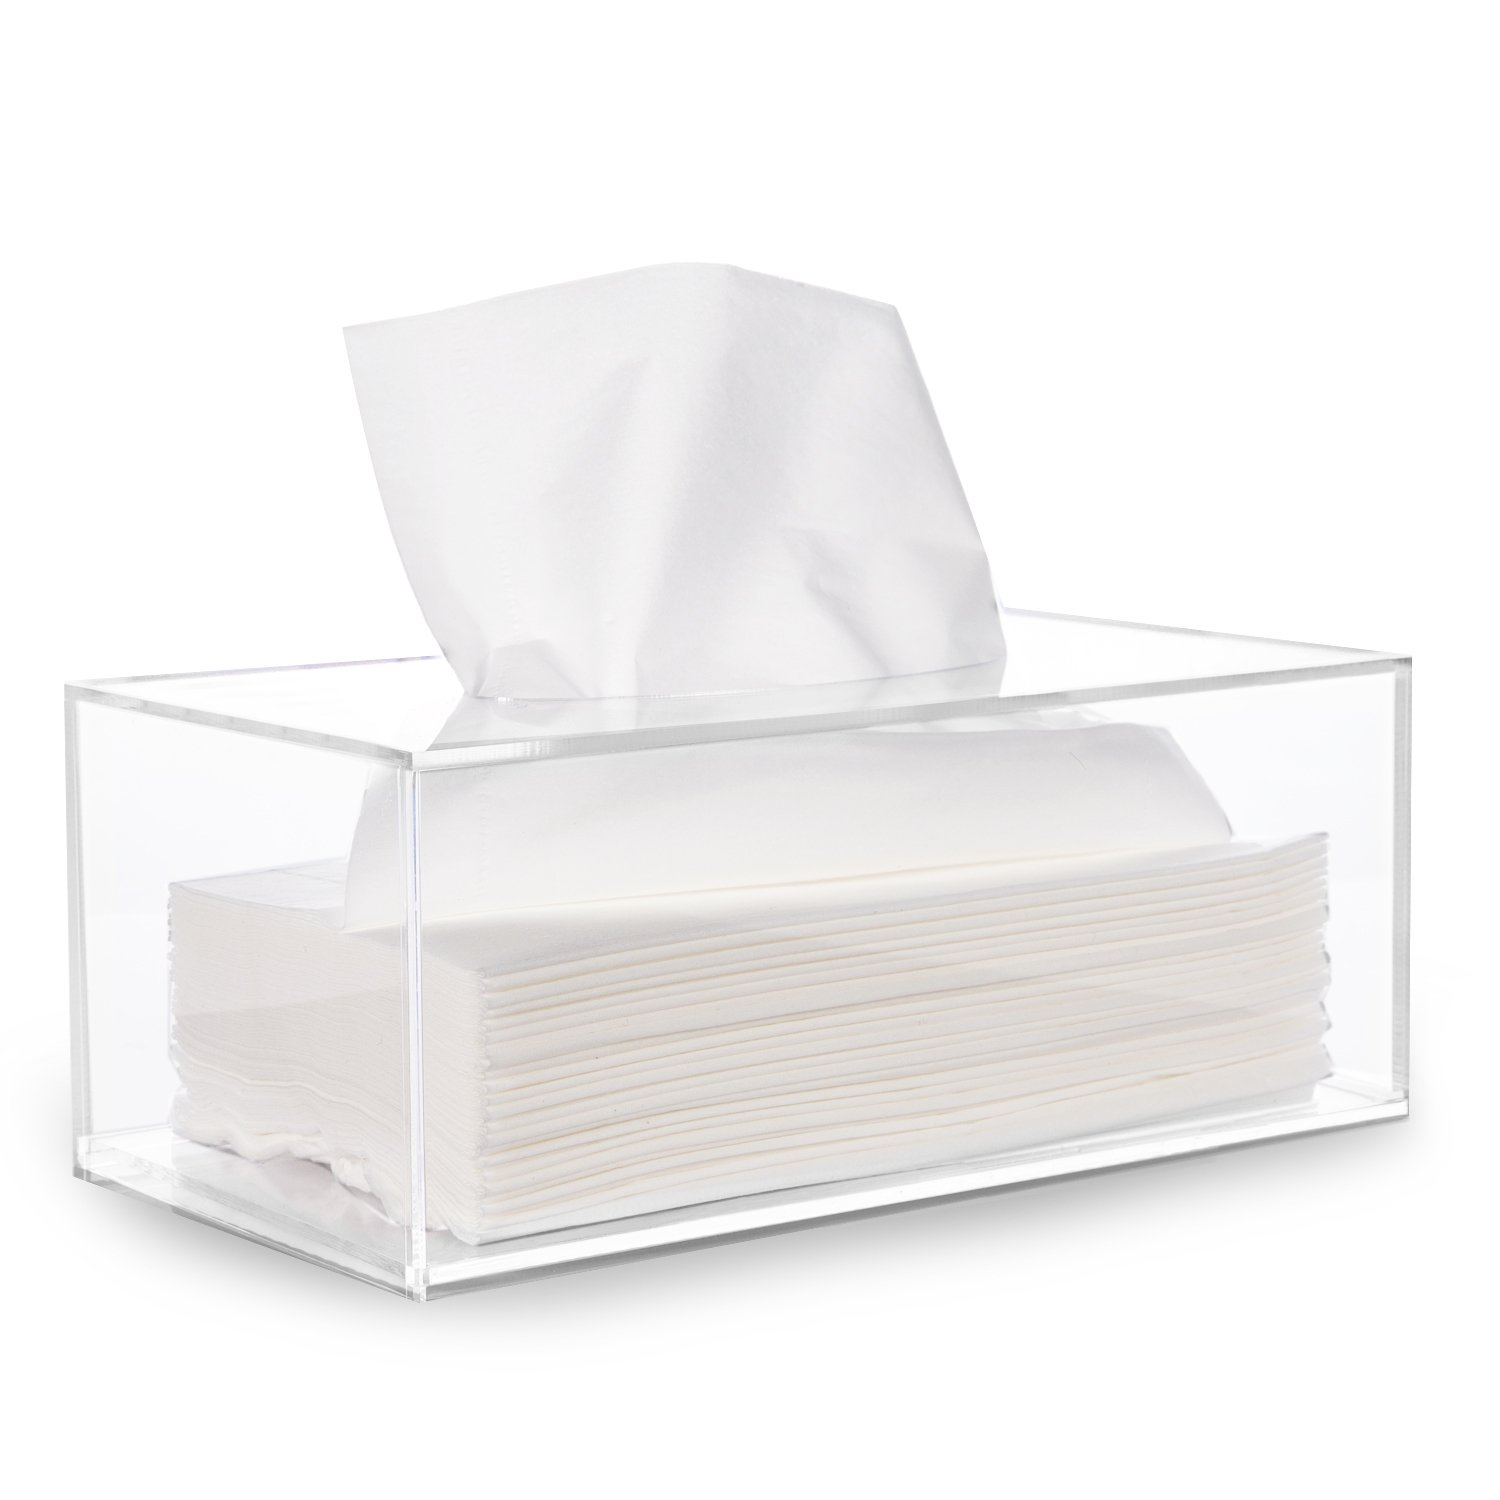 HBlife Facial Tissue Dispenser Box Cover Holder Clear Acrylic Rectangle Napkin Organizer for Bathroom, Kitchen and Office Room